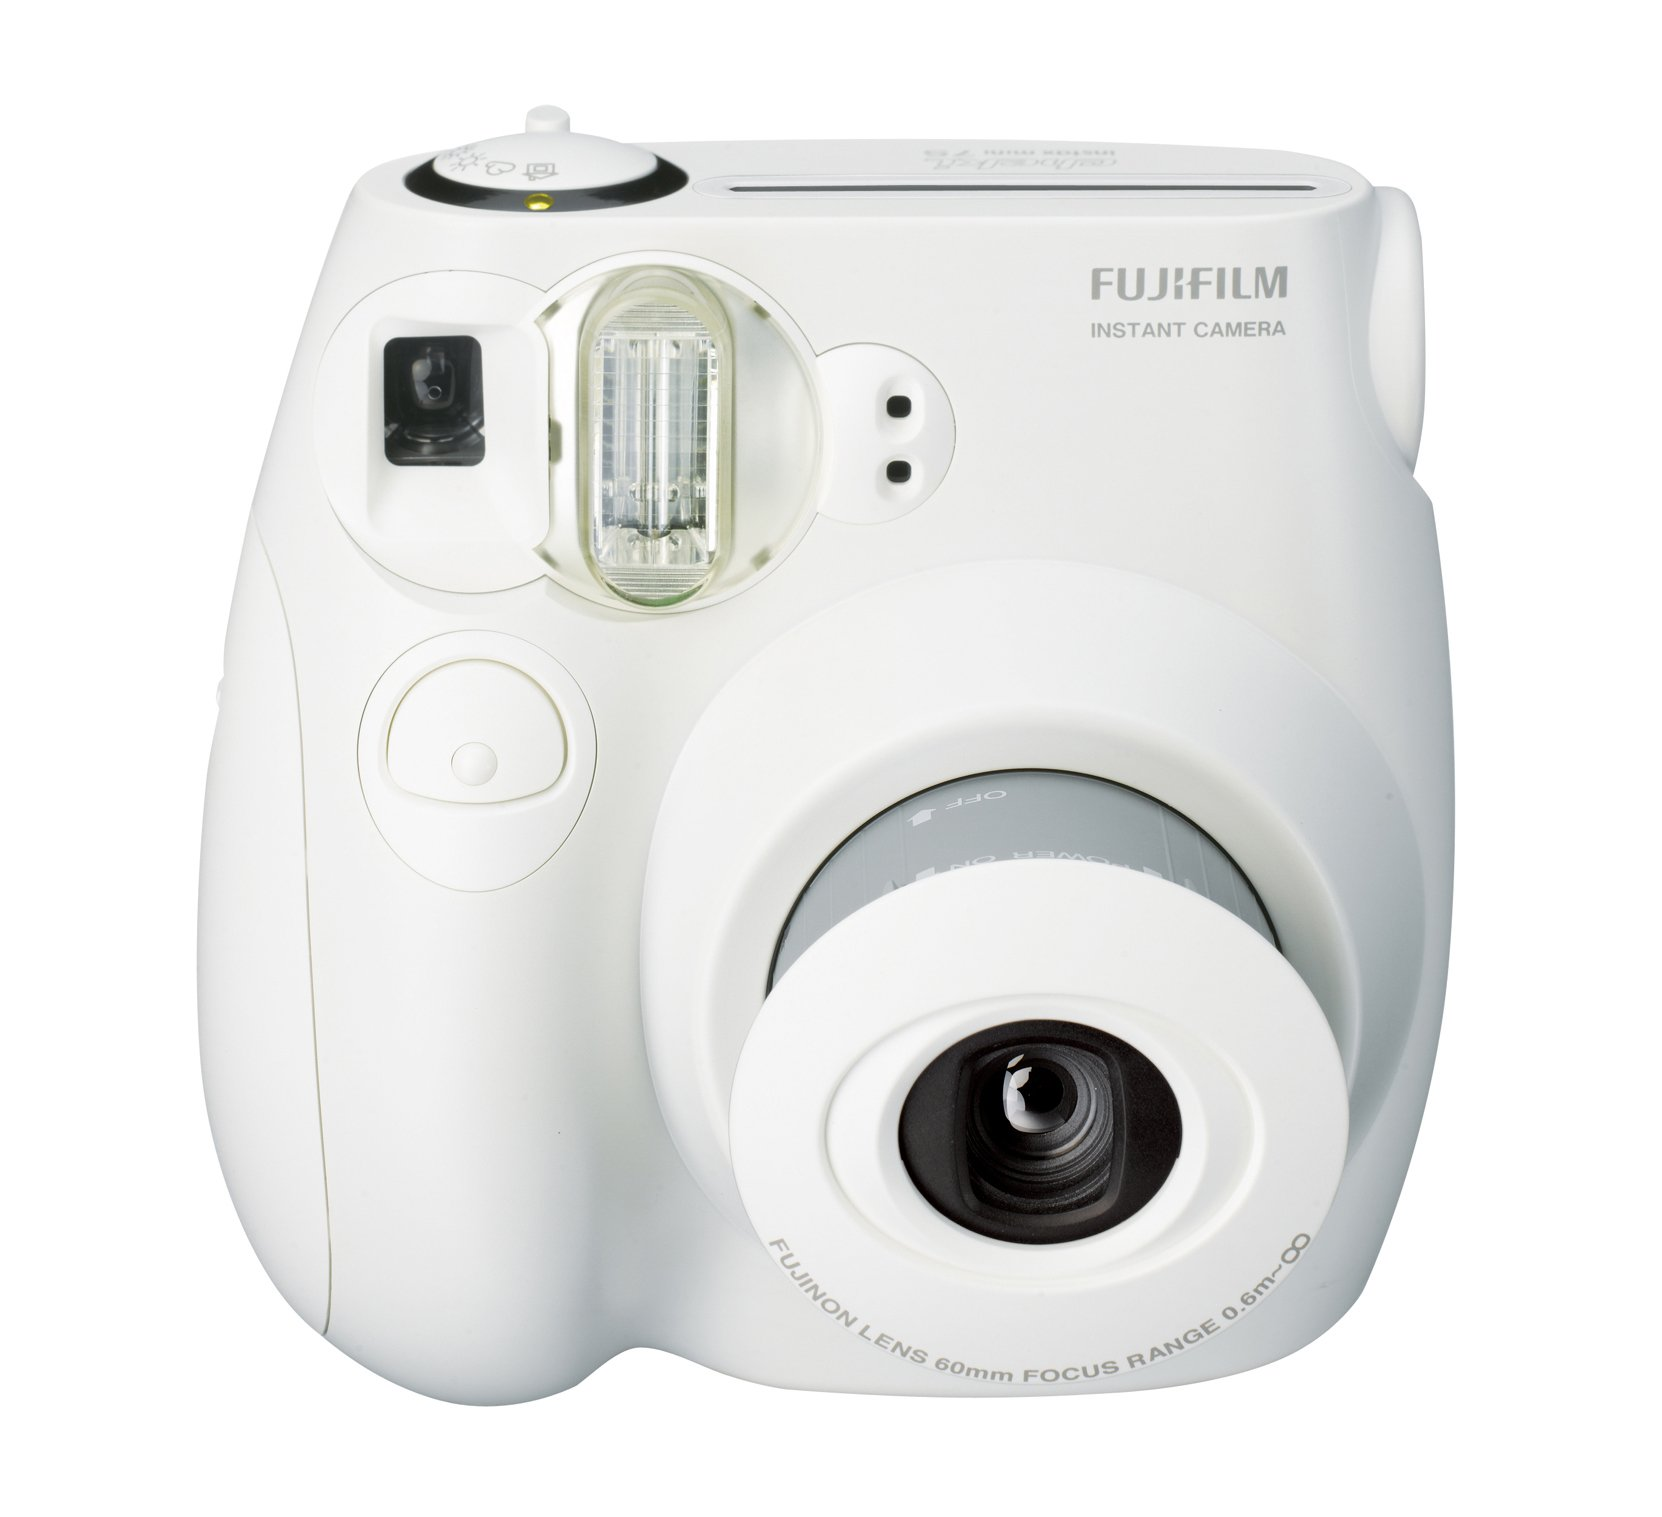 Best Polaroid Cameras